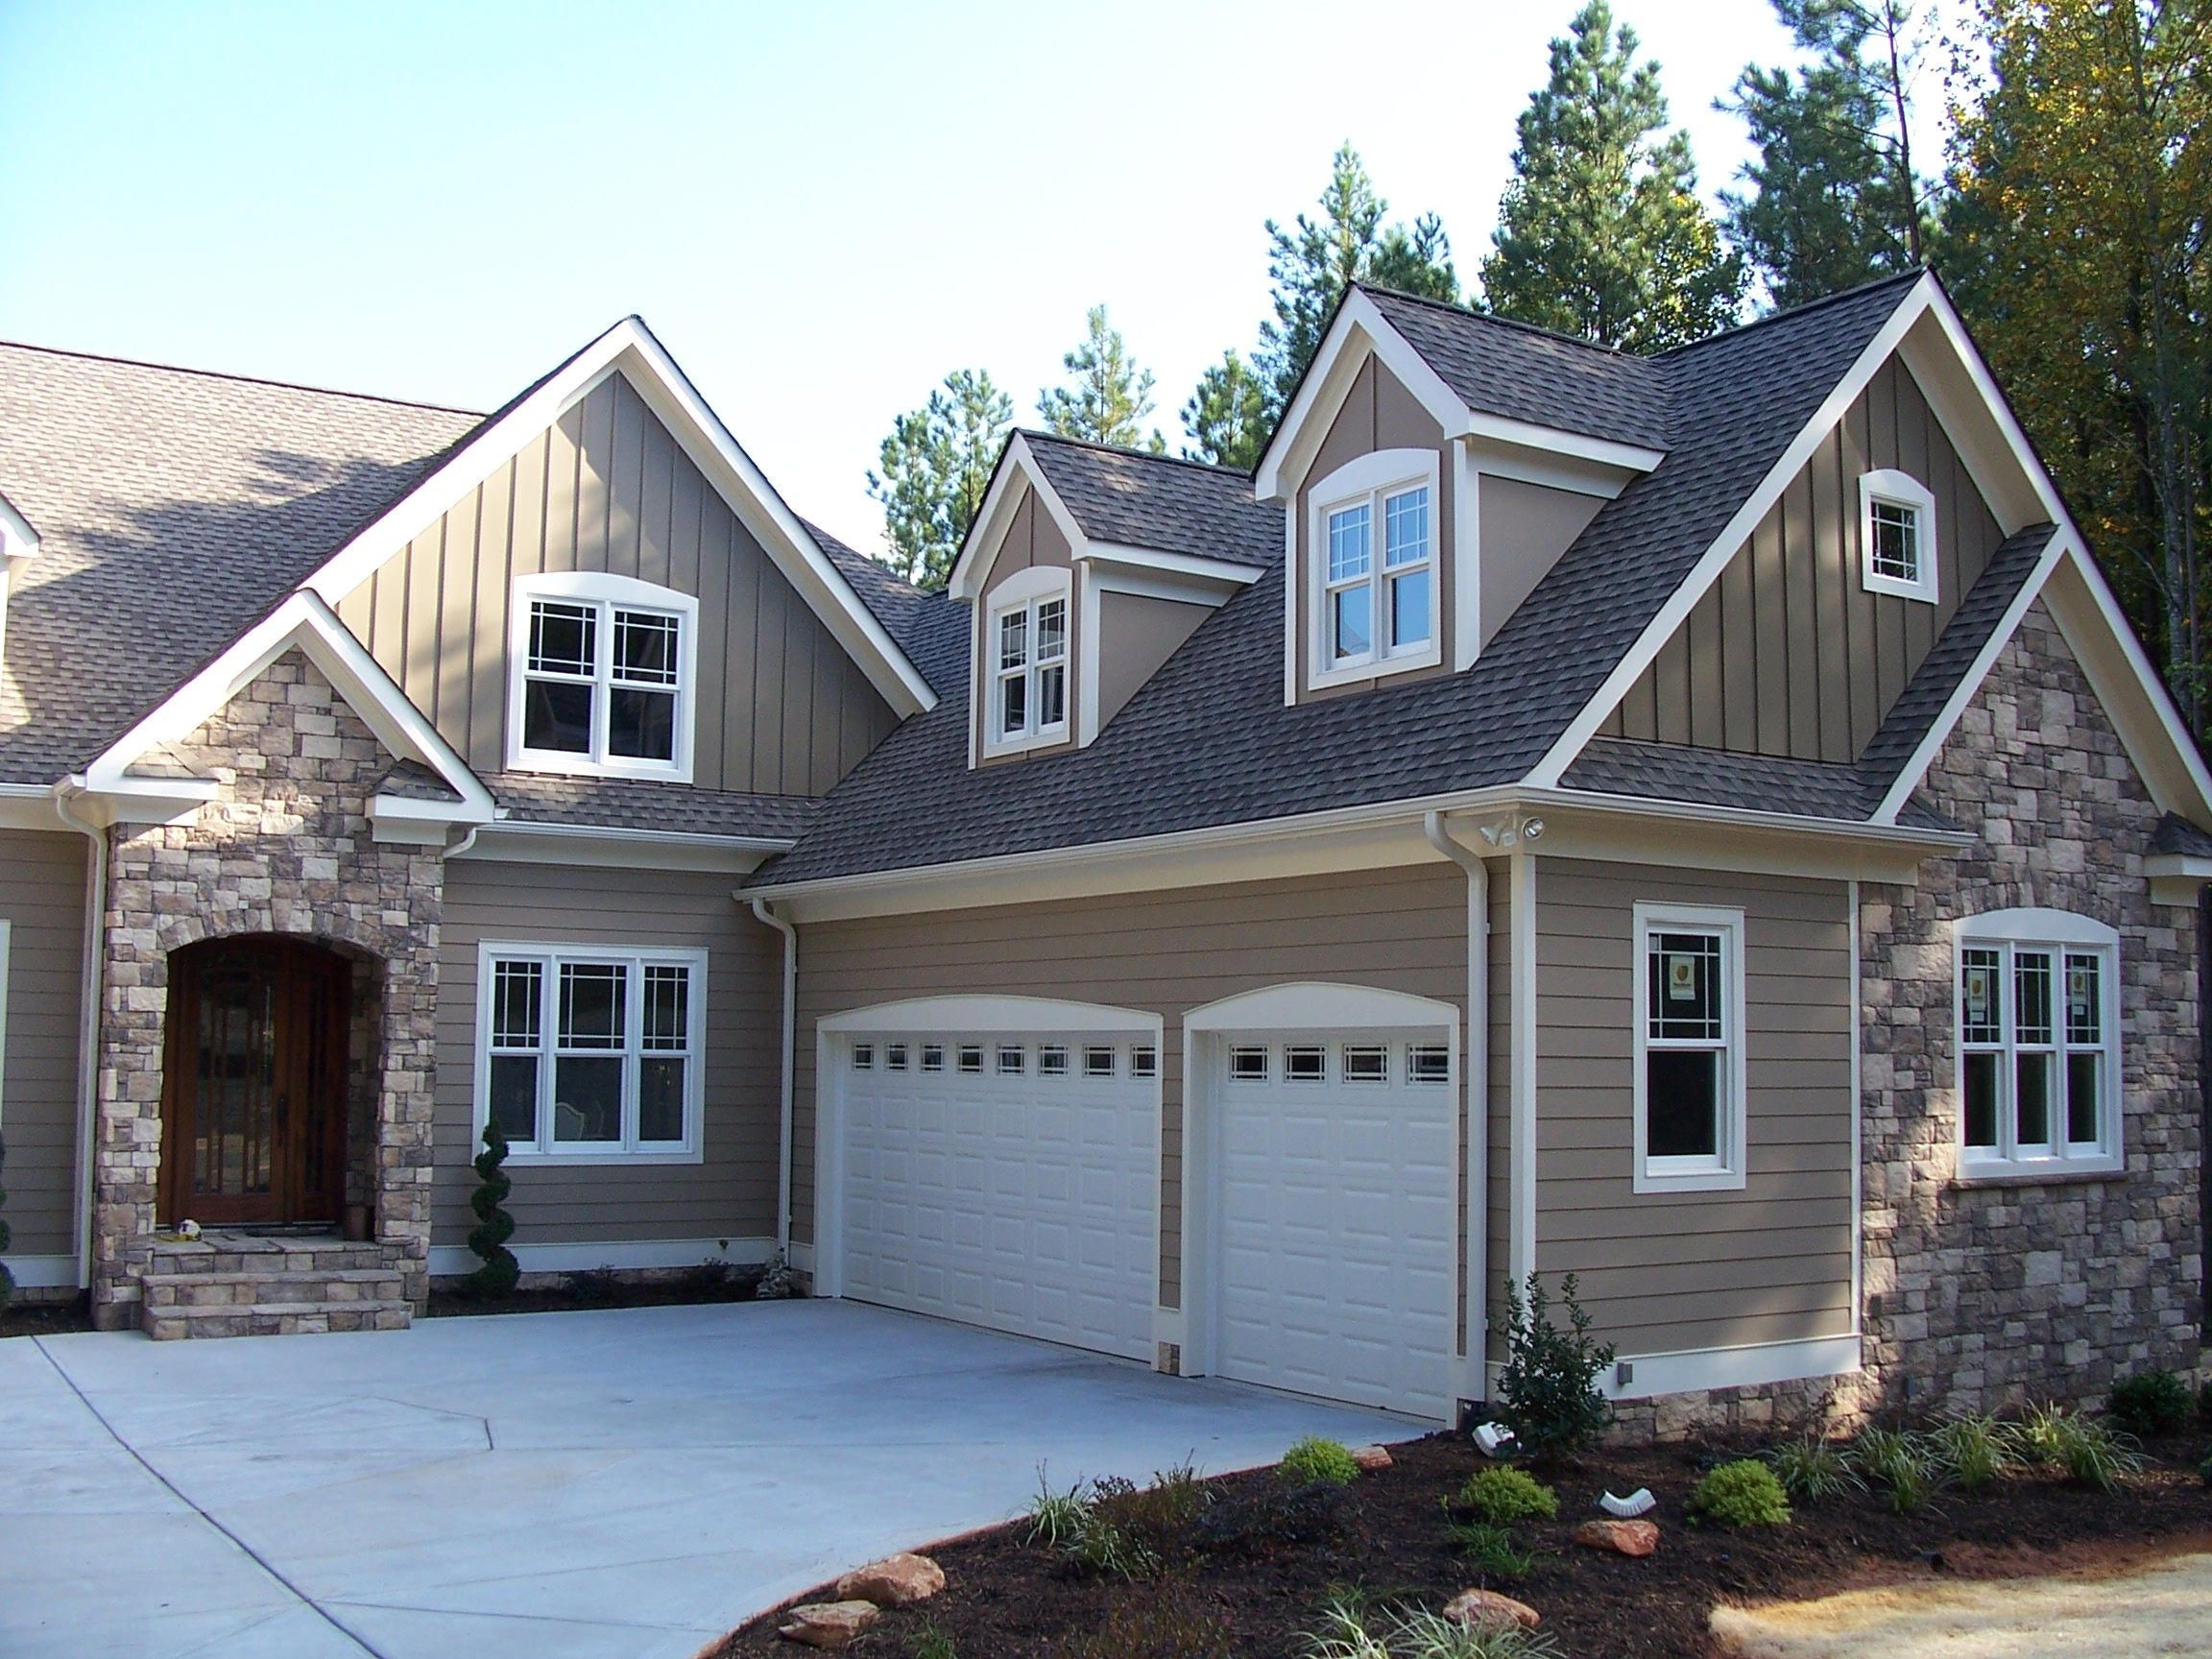 Fabulous 17 Best Images About Lowes Exterior Color On Pinterest Exterior Inspirational Interior Design Netriciaus